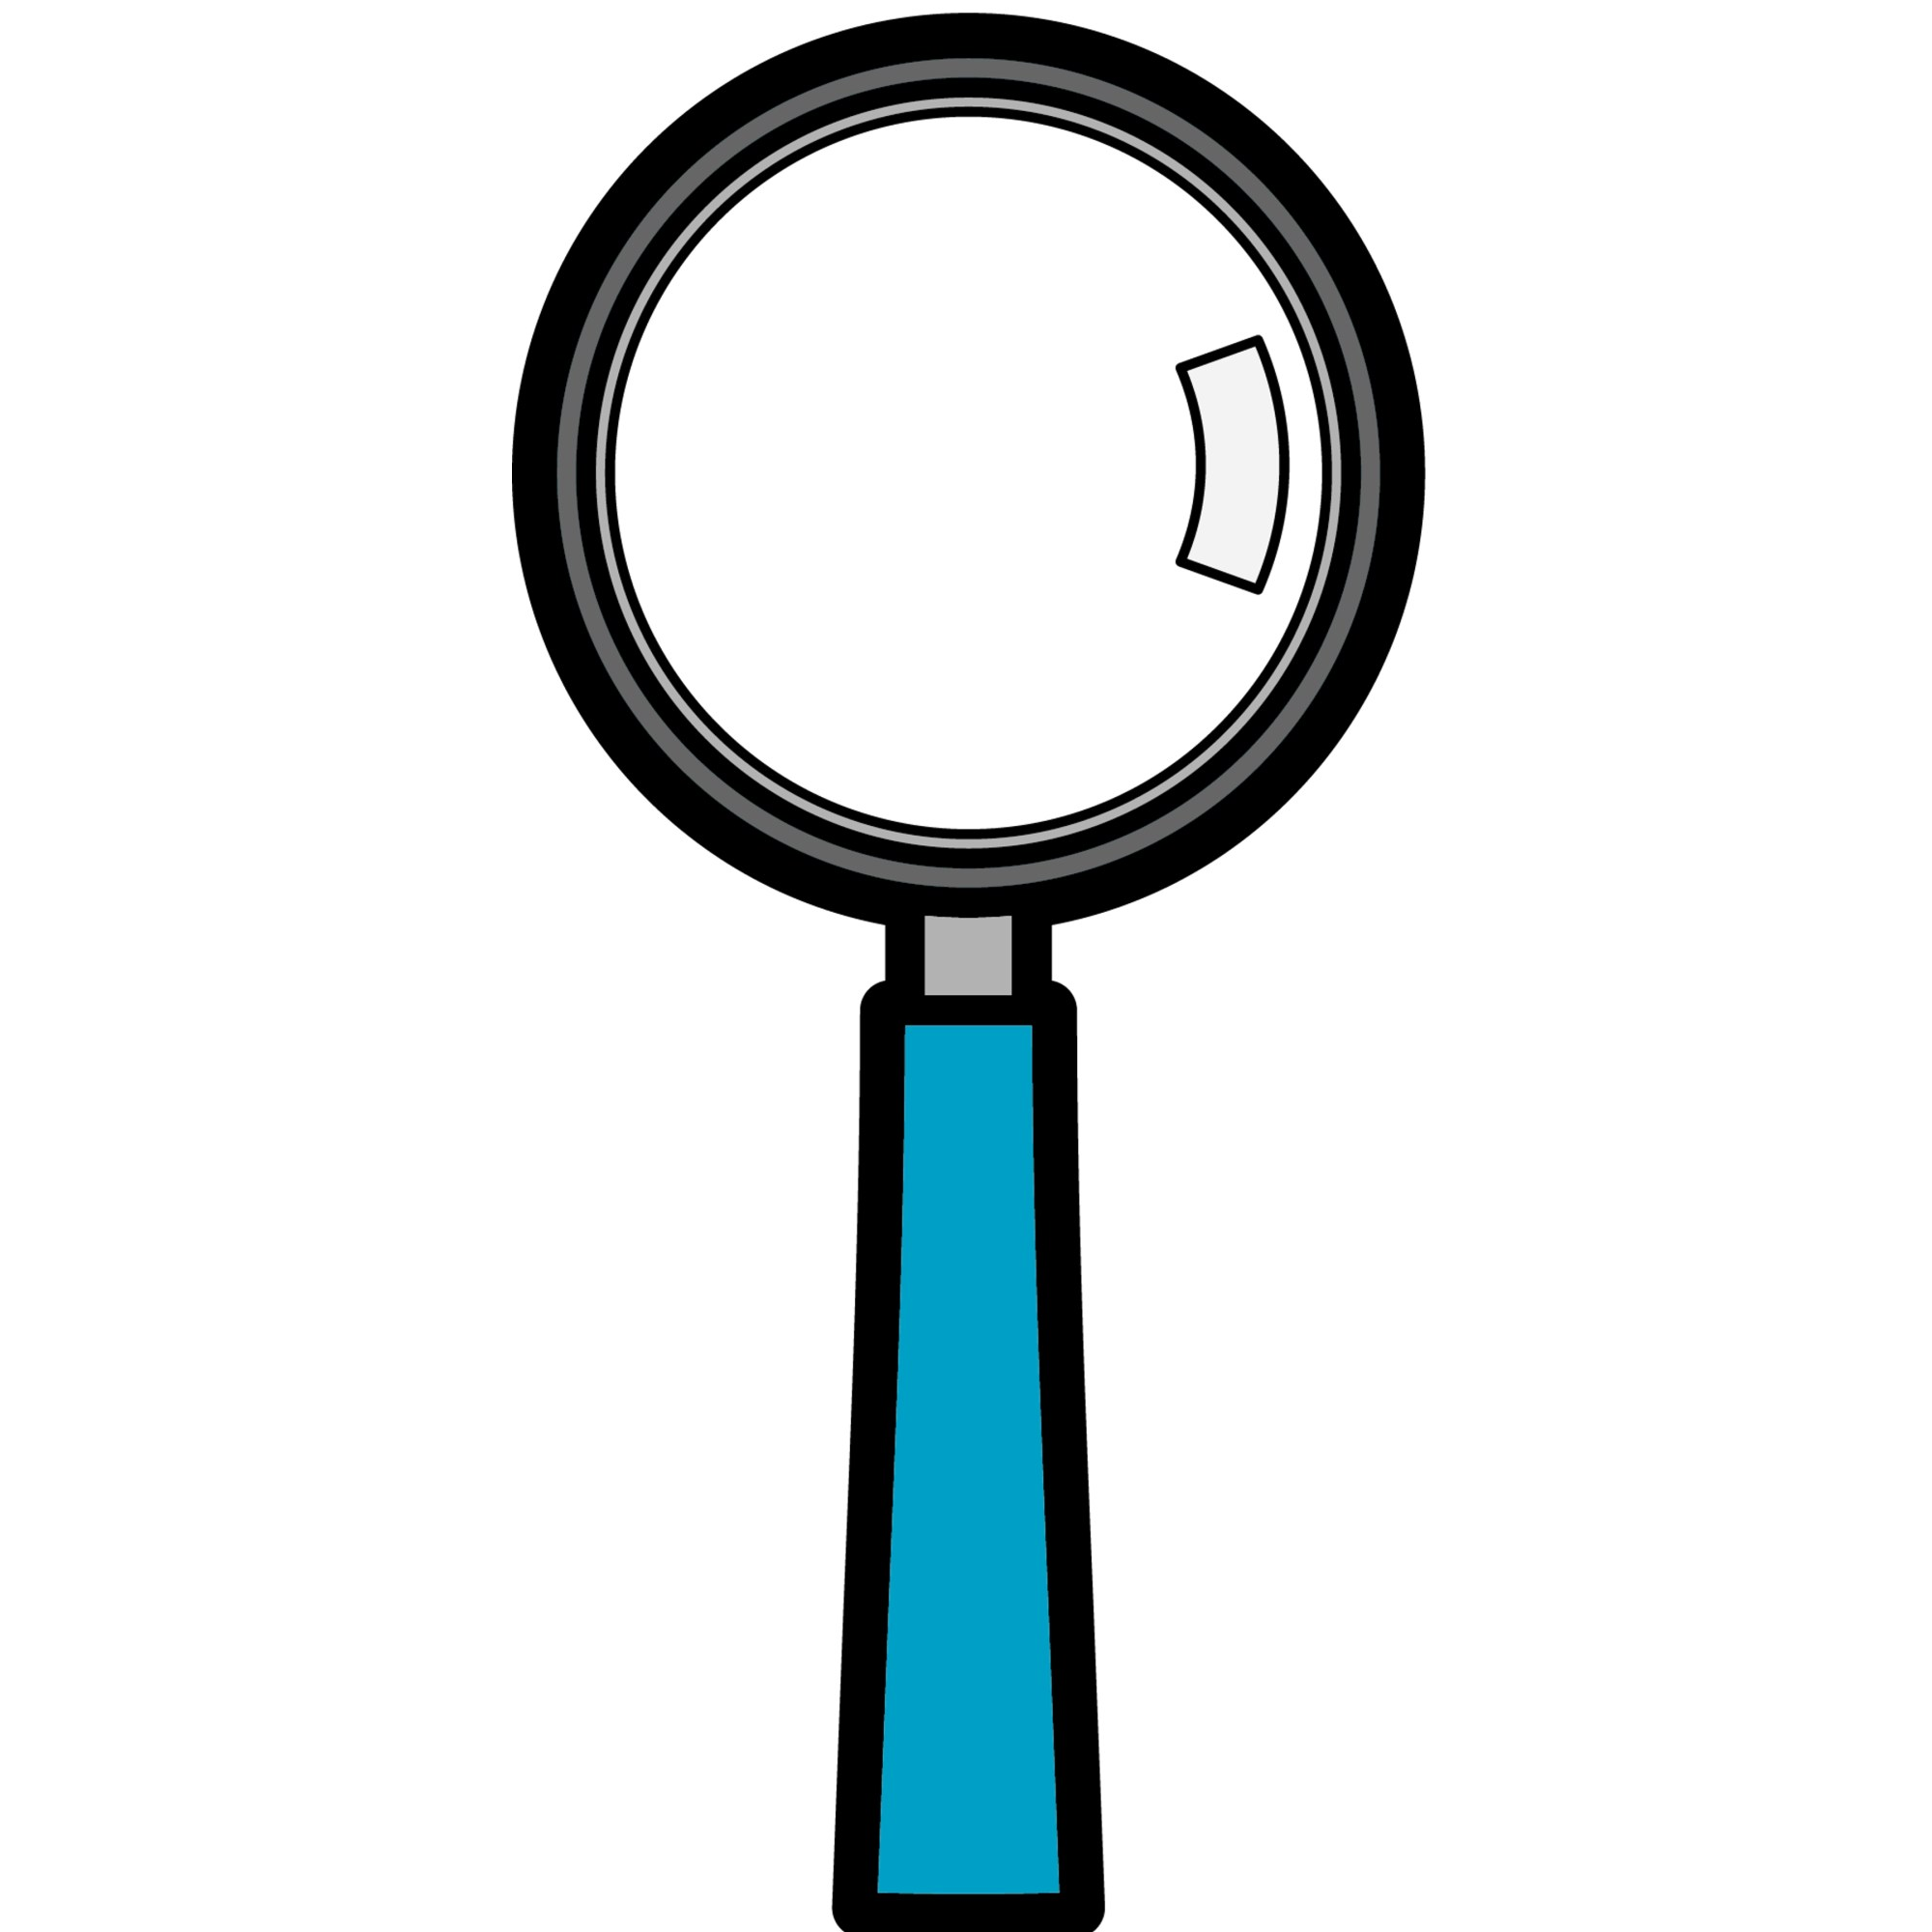 hight resolution of magnifying glass clipart free download